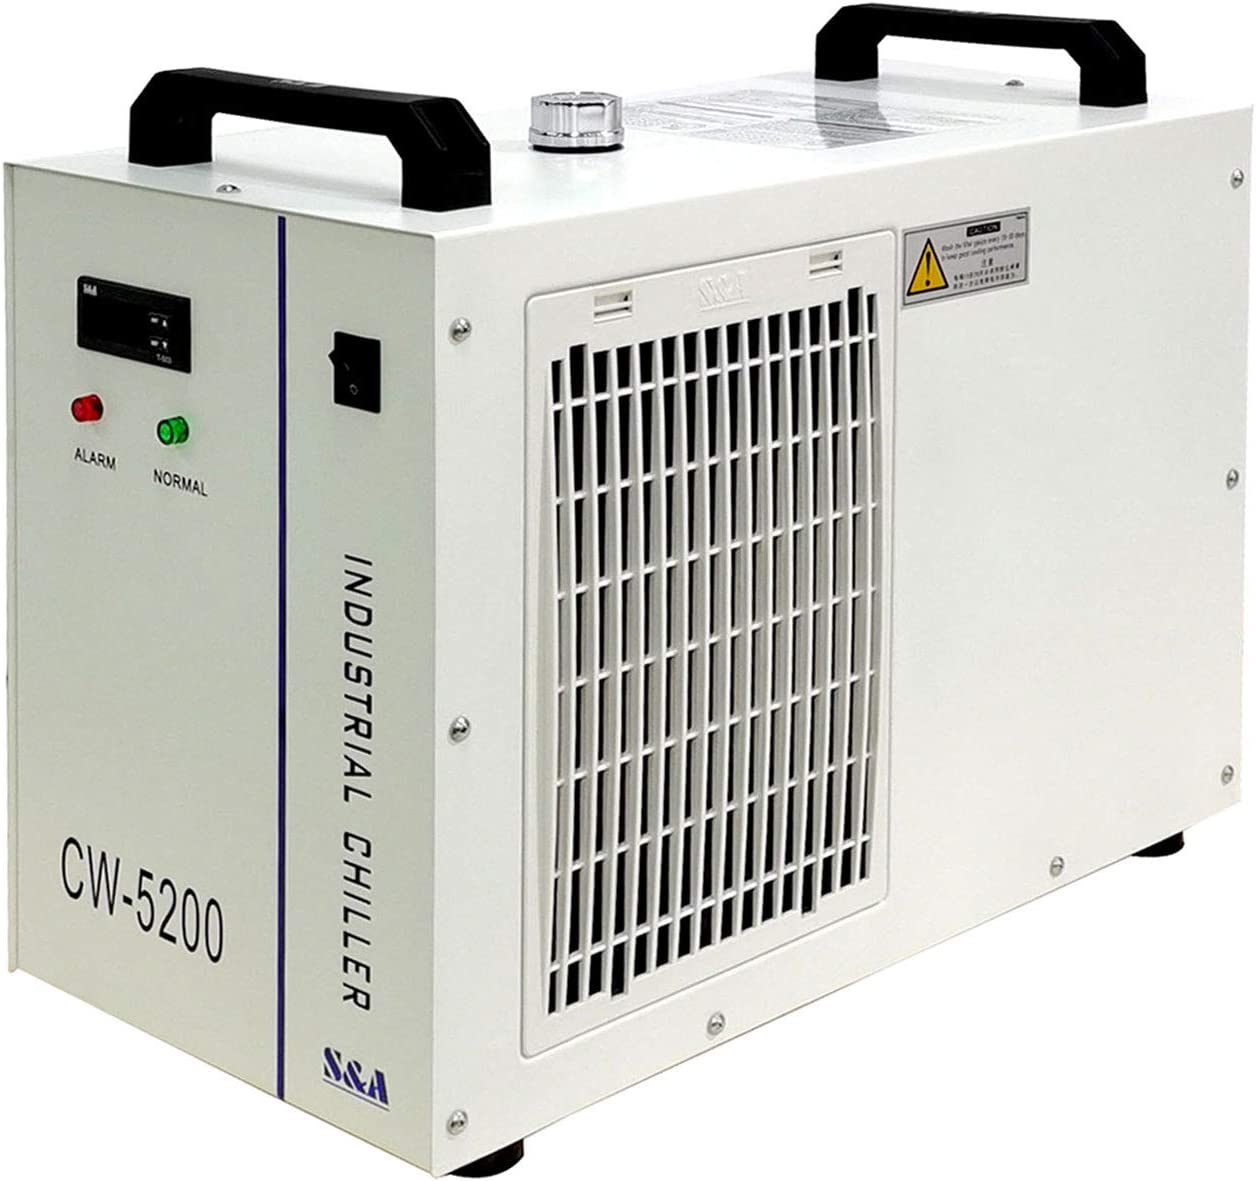 S&A Genuine CW-5200DH (Upgraded 5200DG) Water Chiller Duty Free for CO2 Laser Engraving Cutting Water Cooling